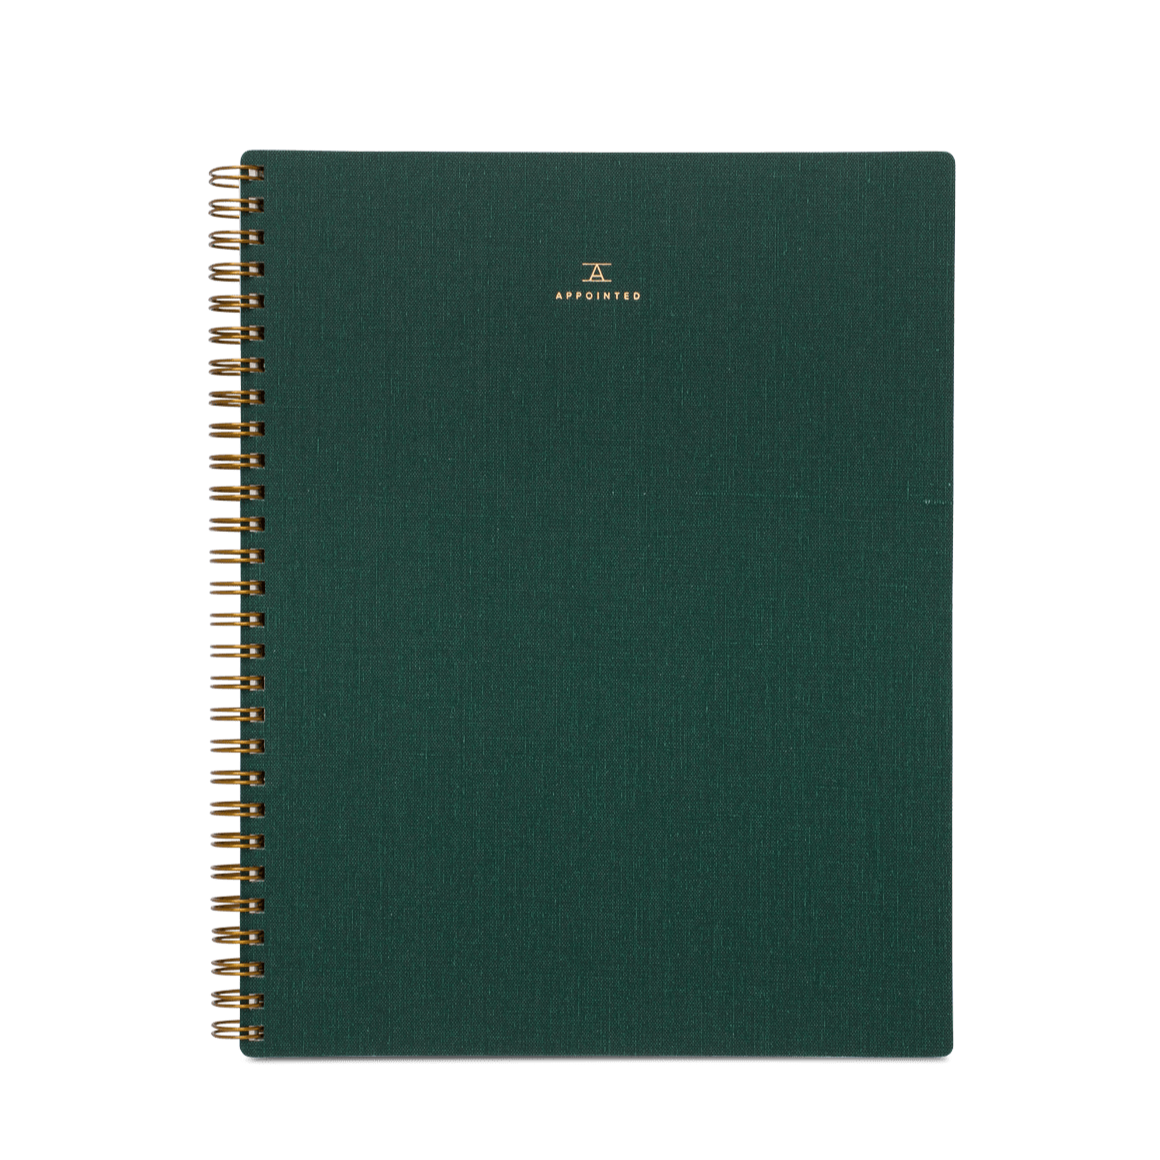 Lined, Hunter Green Notebook